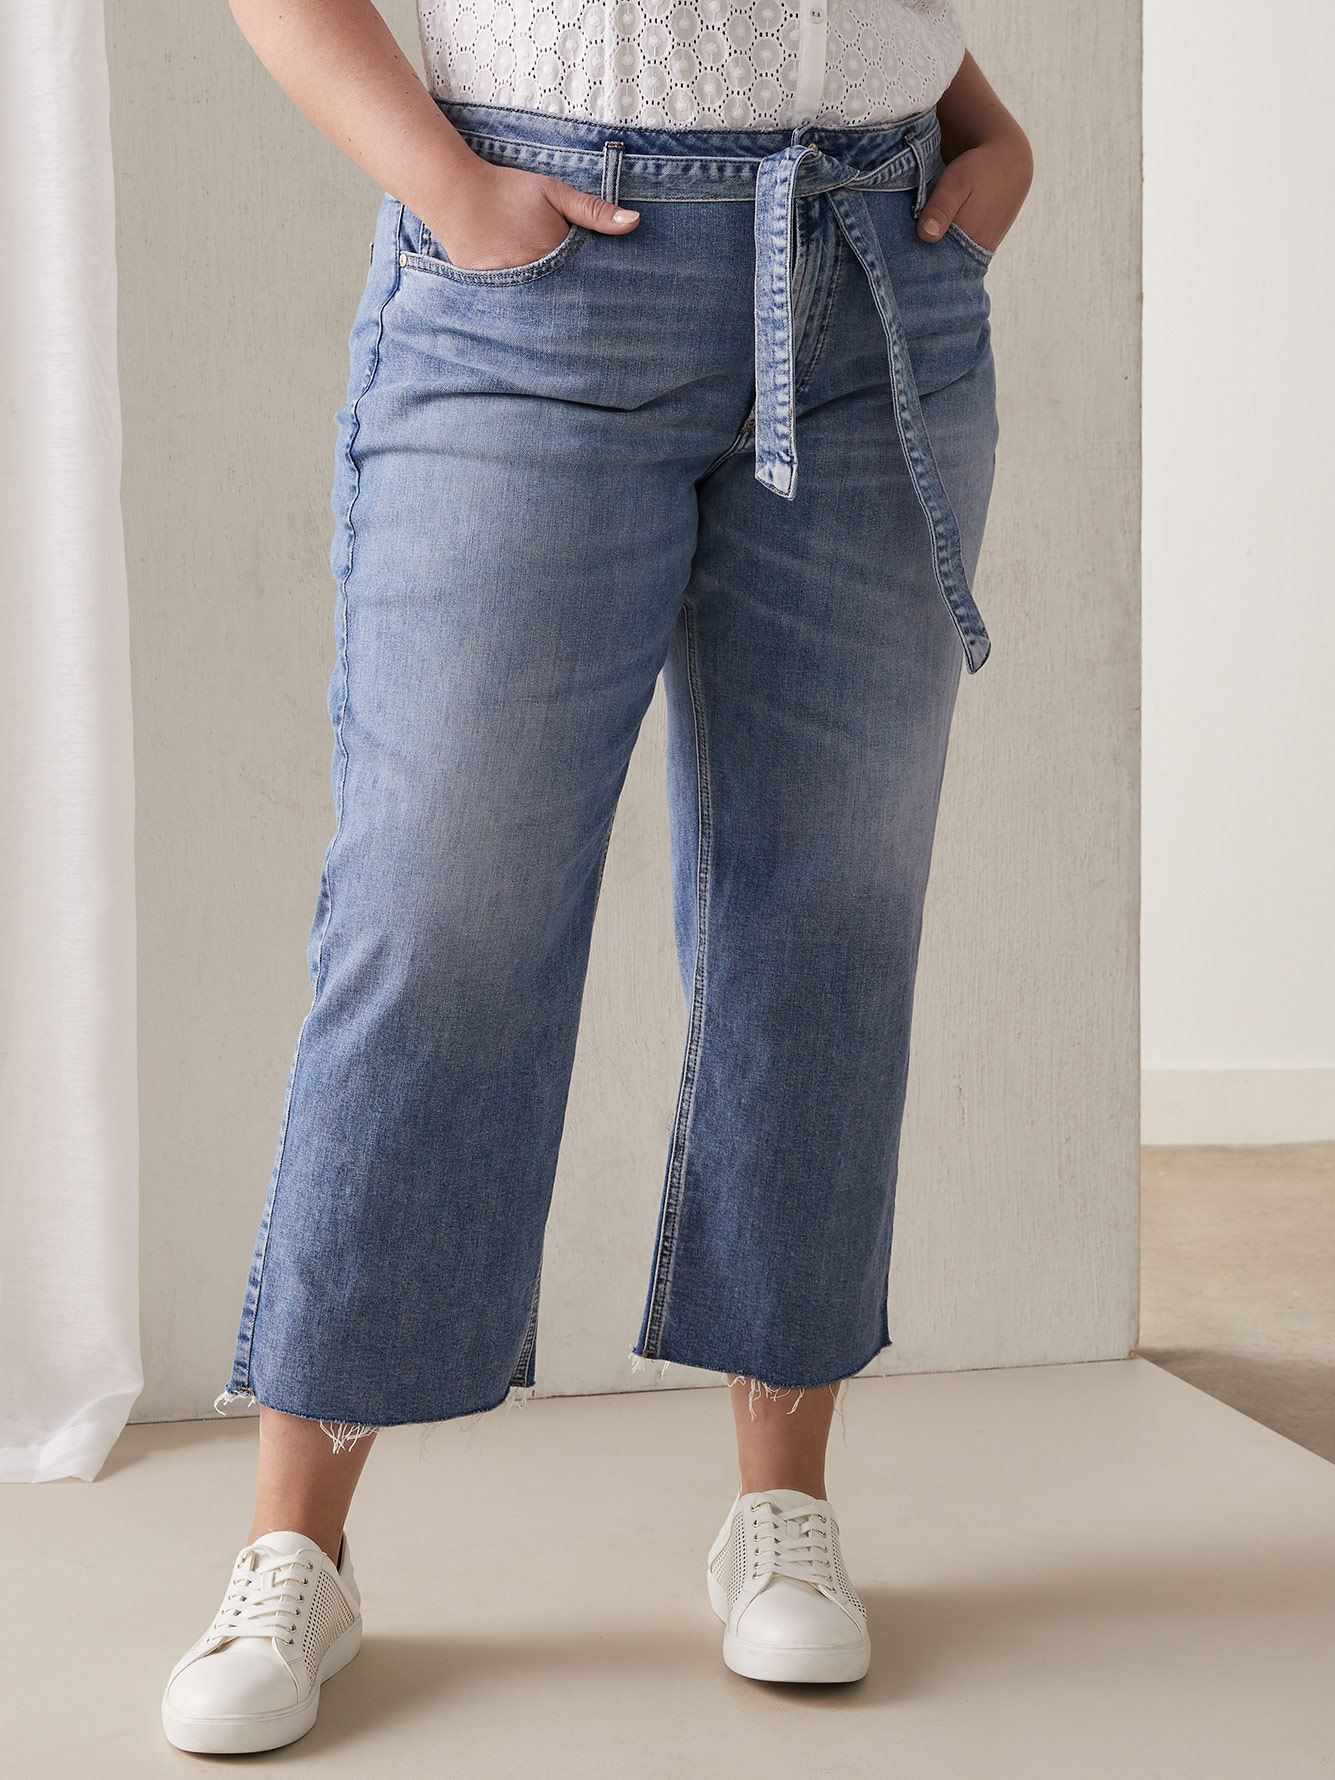 Silver Jeans - Wide Jean with Self-Tie